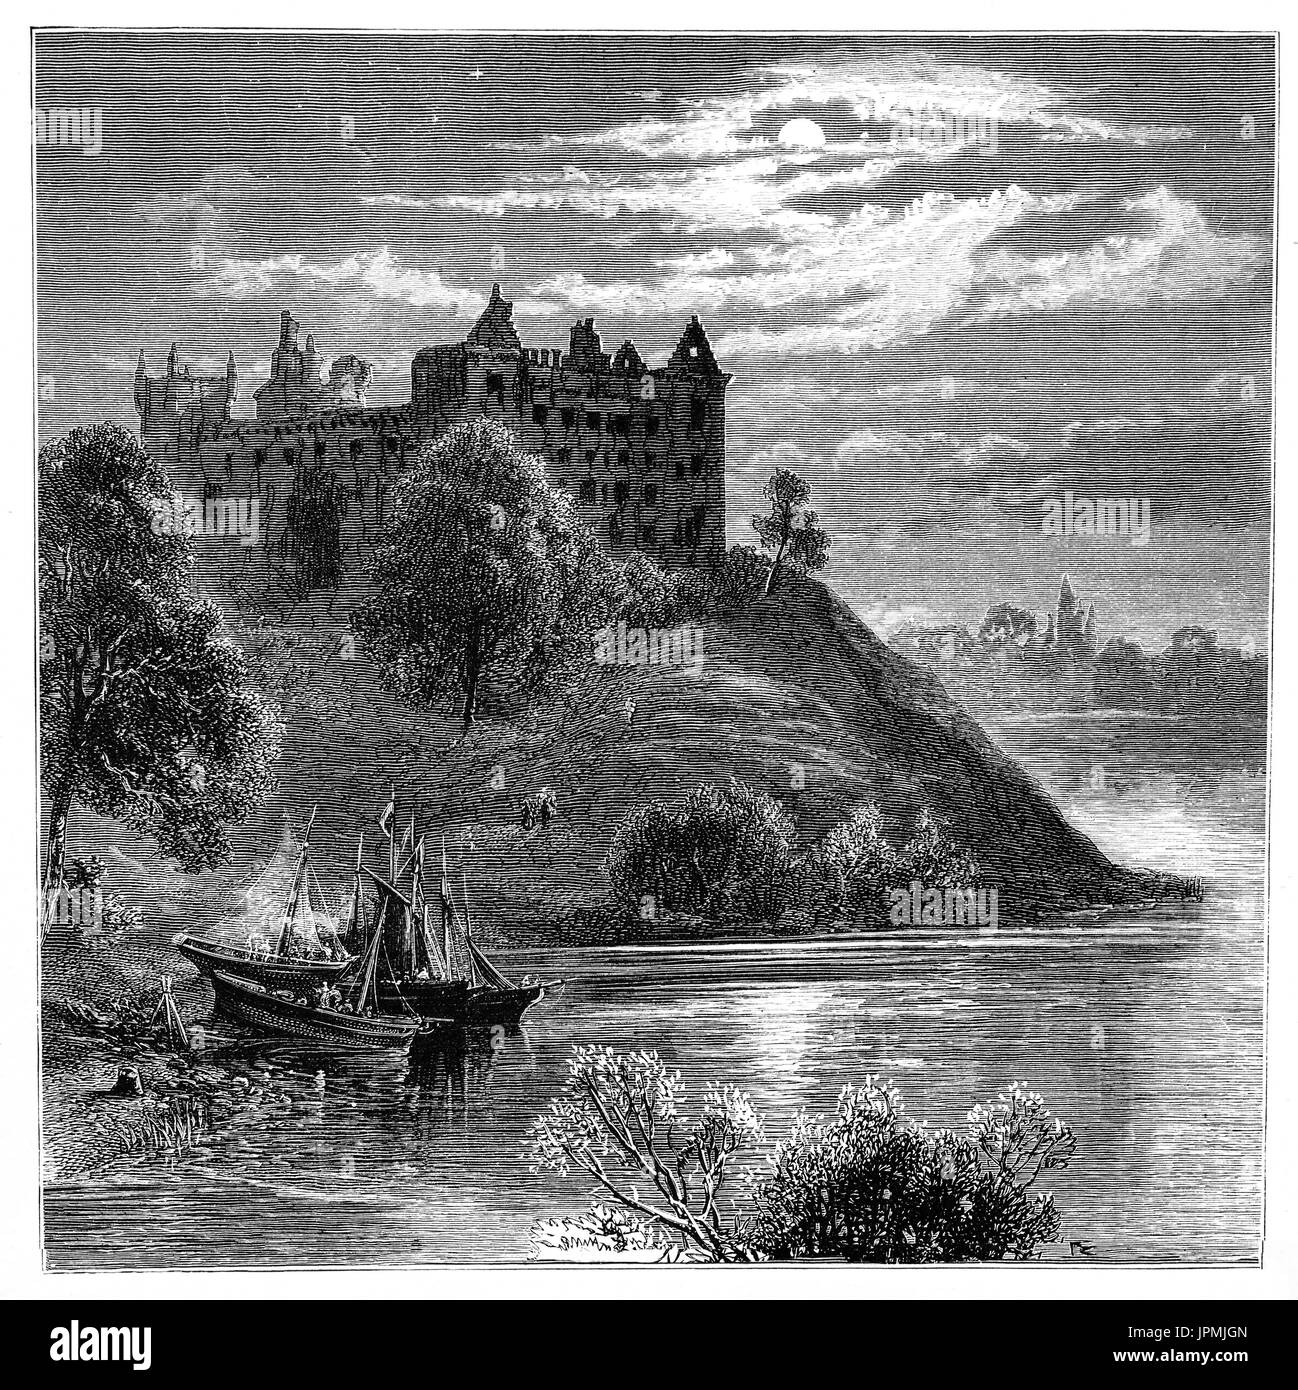 1870: Sailing boats drawn up on a promontory in Linlithgow Loch below Linlithgow Palace or castle. It was one of Stock Photo